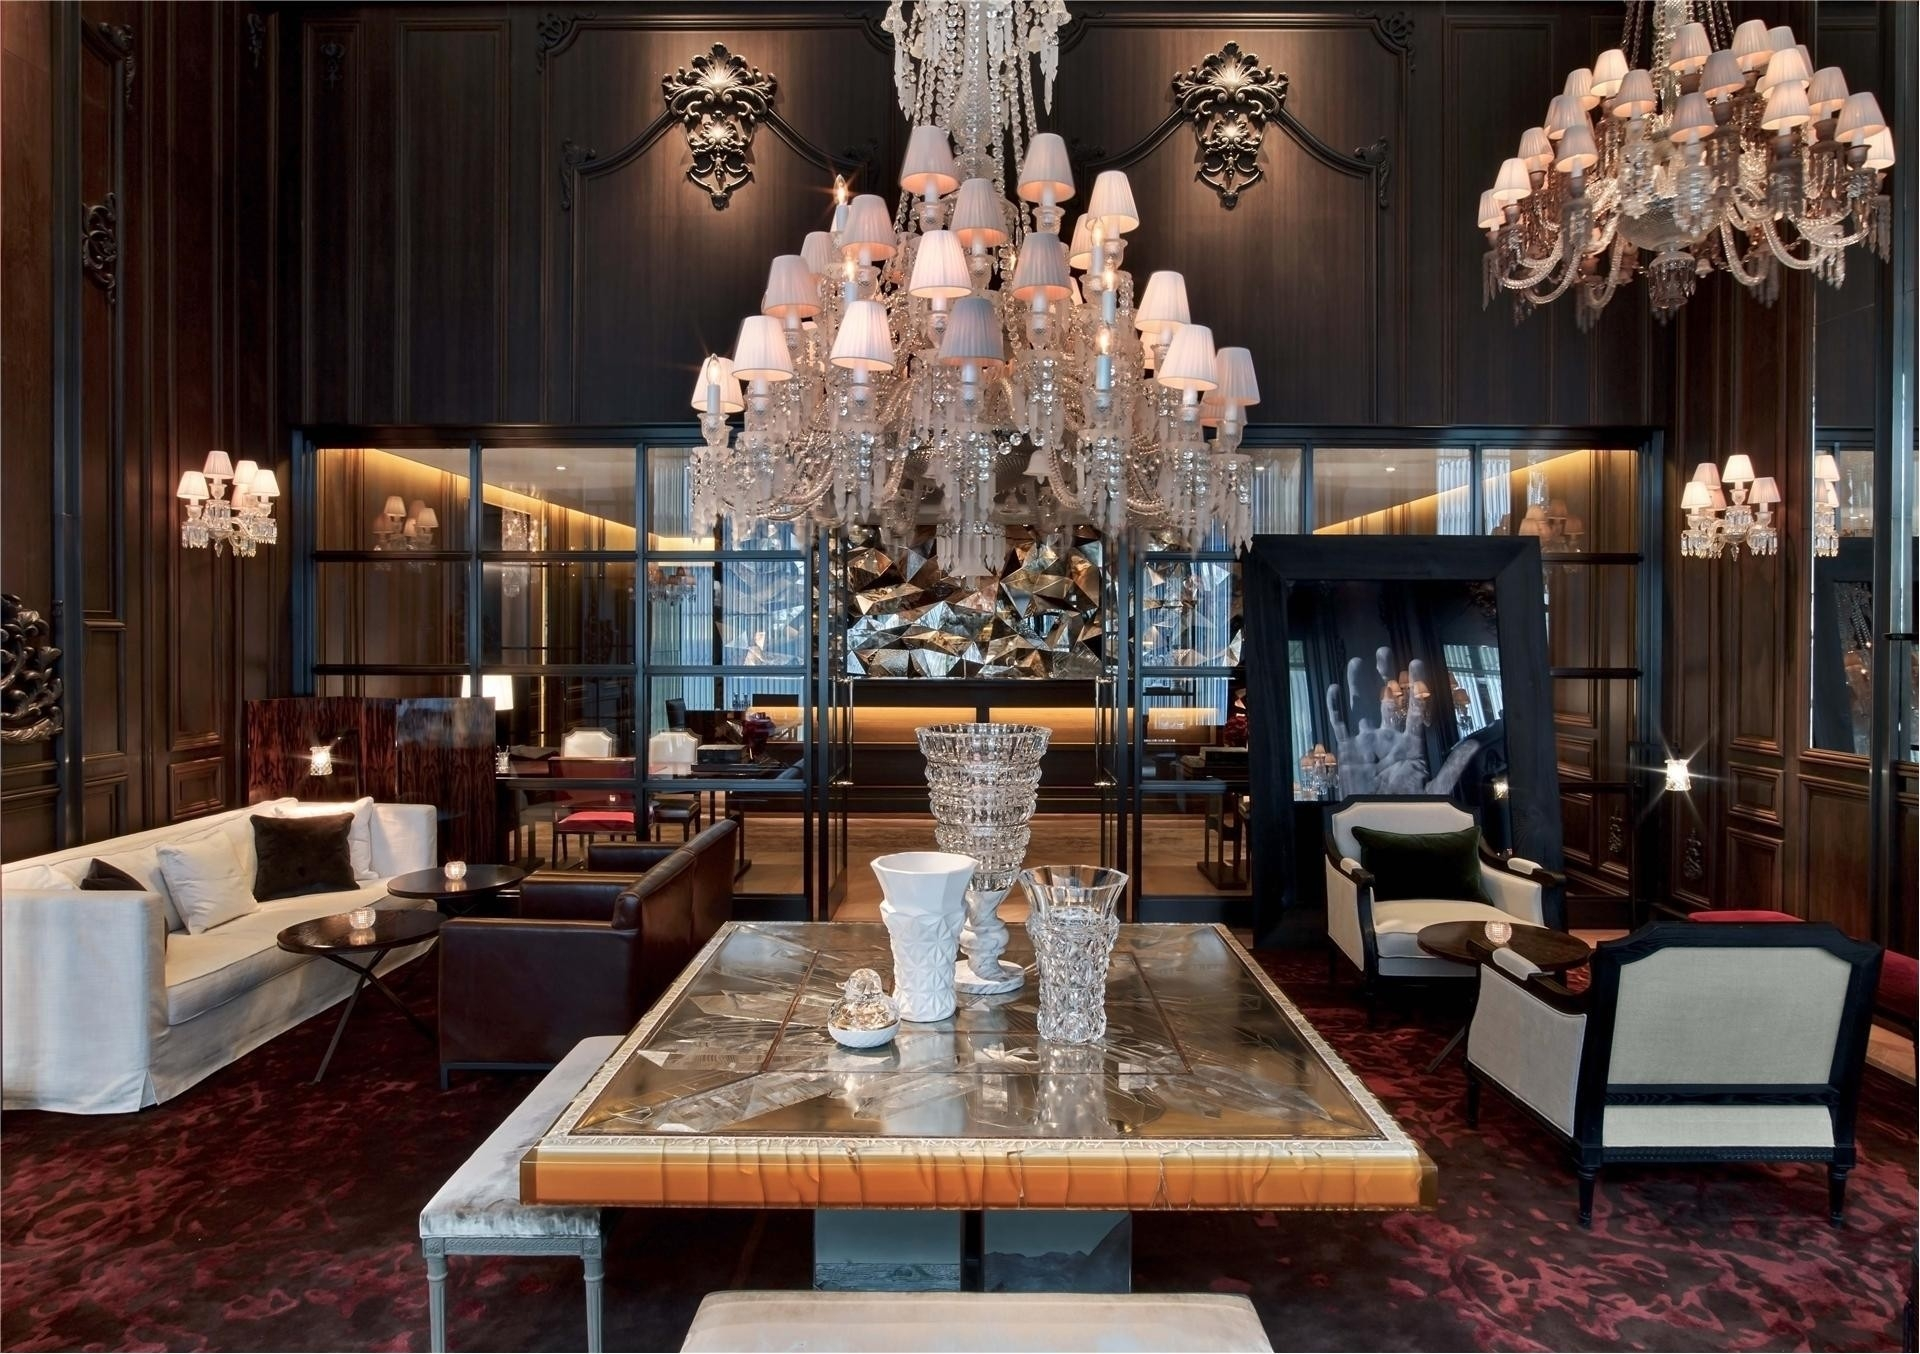 19. Condominiums for Sale at BACCARAT HOTEL & RESIDENCES, 20 West 53rd St, PH48/49 Midtown West, New York, NY 10019